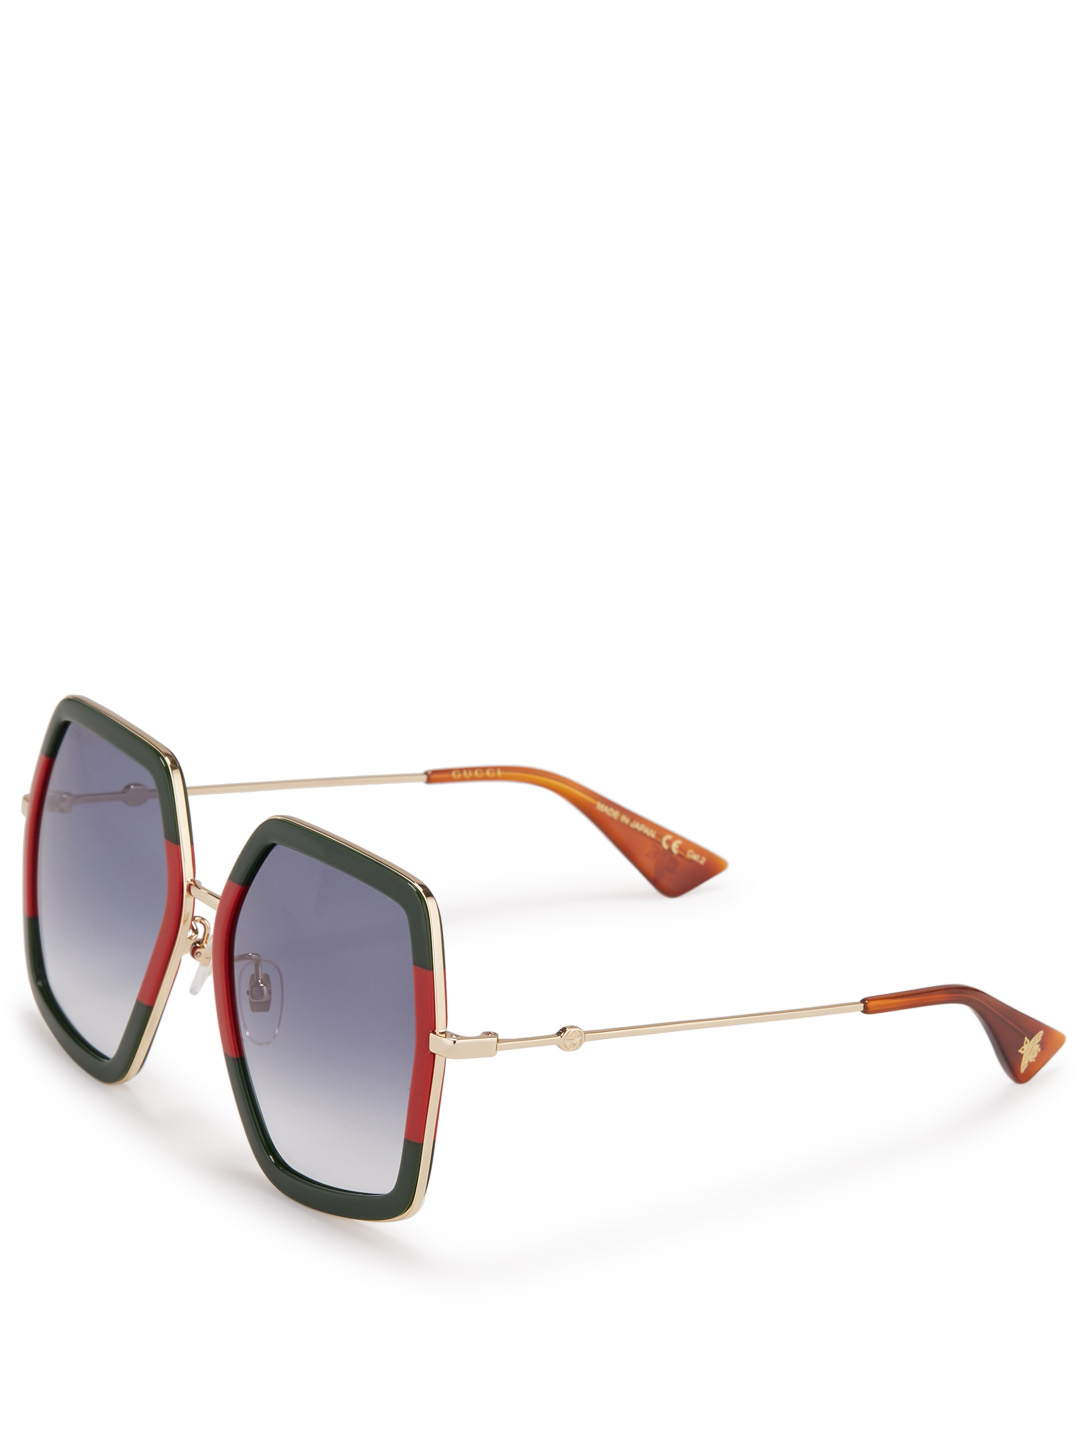 GUCCI Oversized Square Sunglasses Womens Red